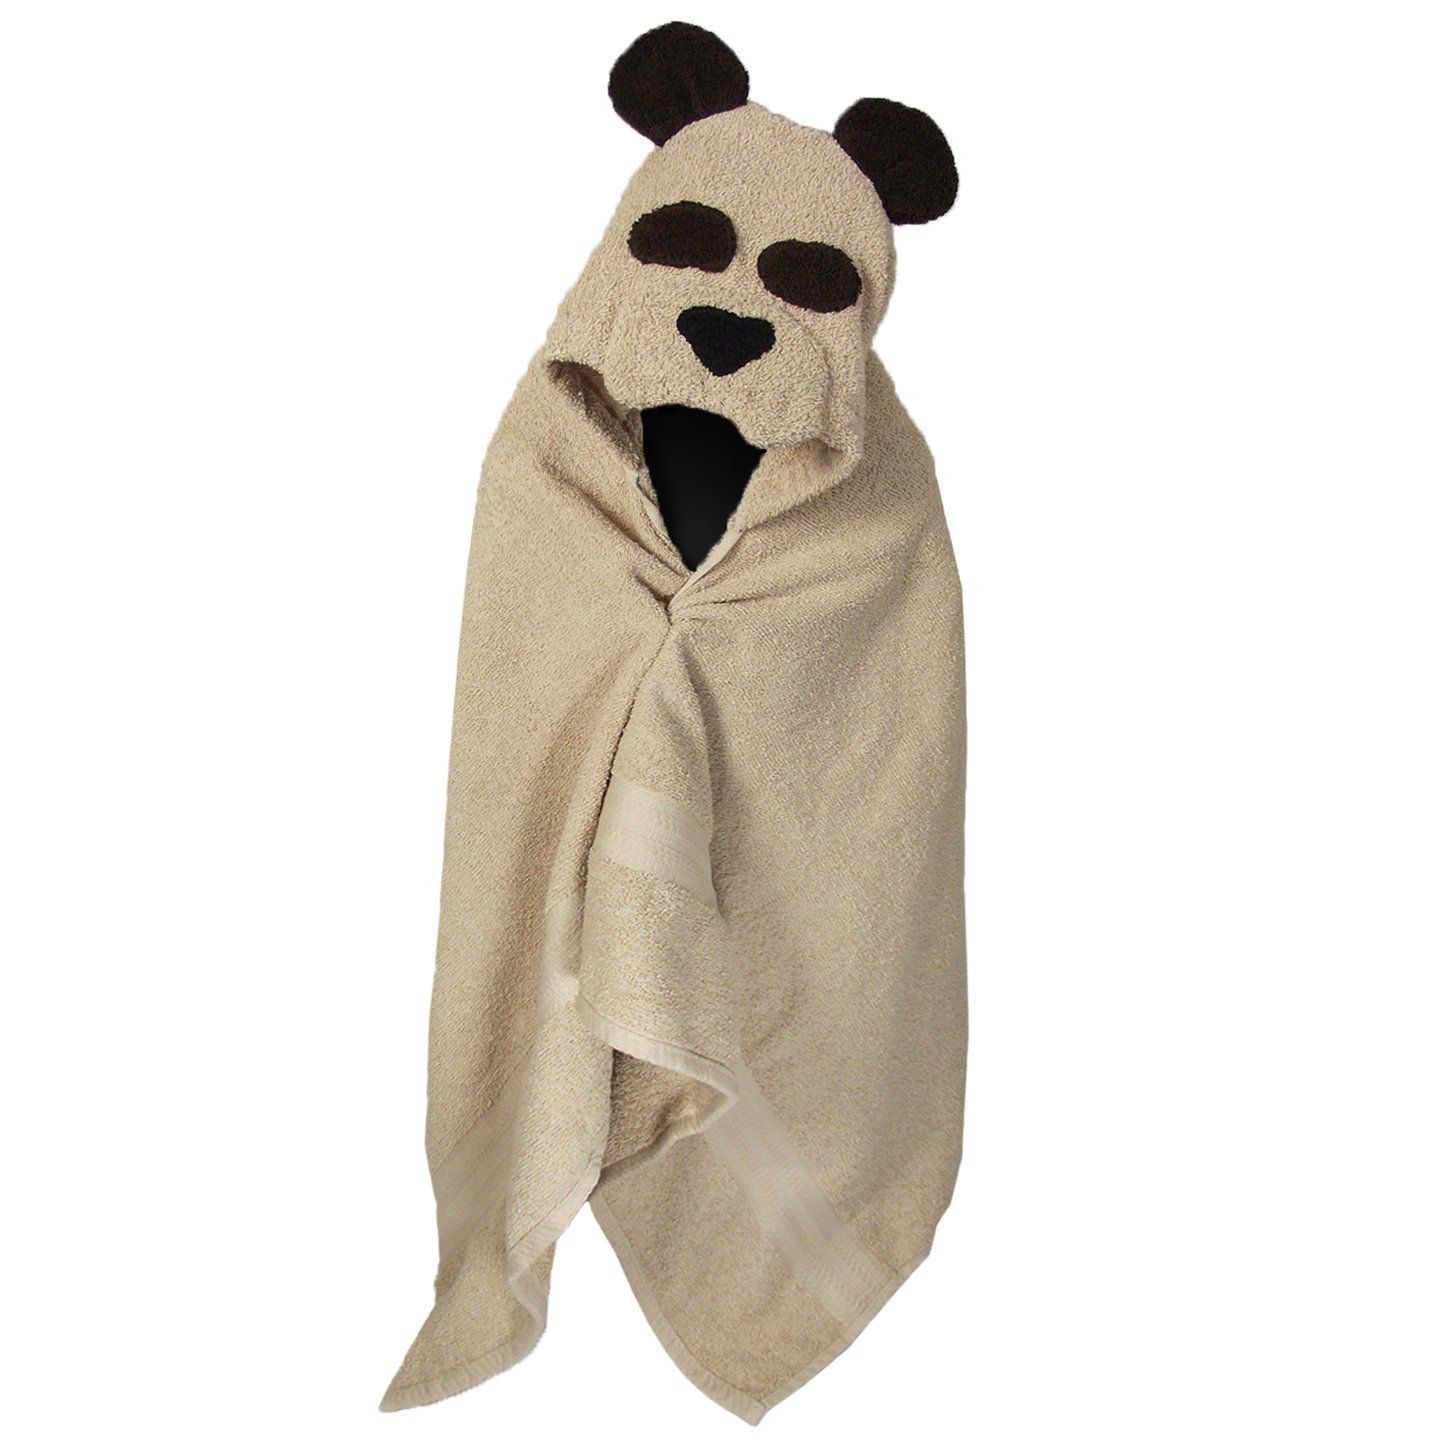 Hooded Towel Frog Bath Towels For Children And Adults Childrens